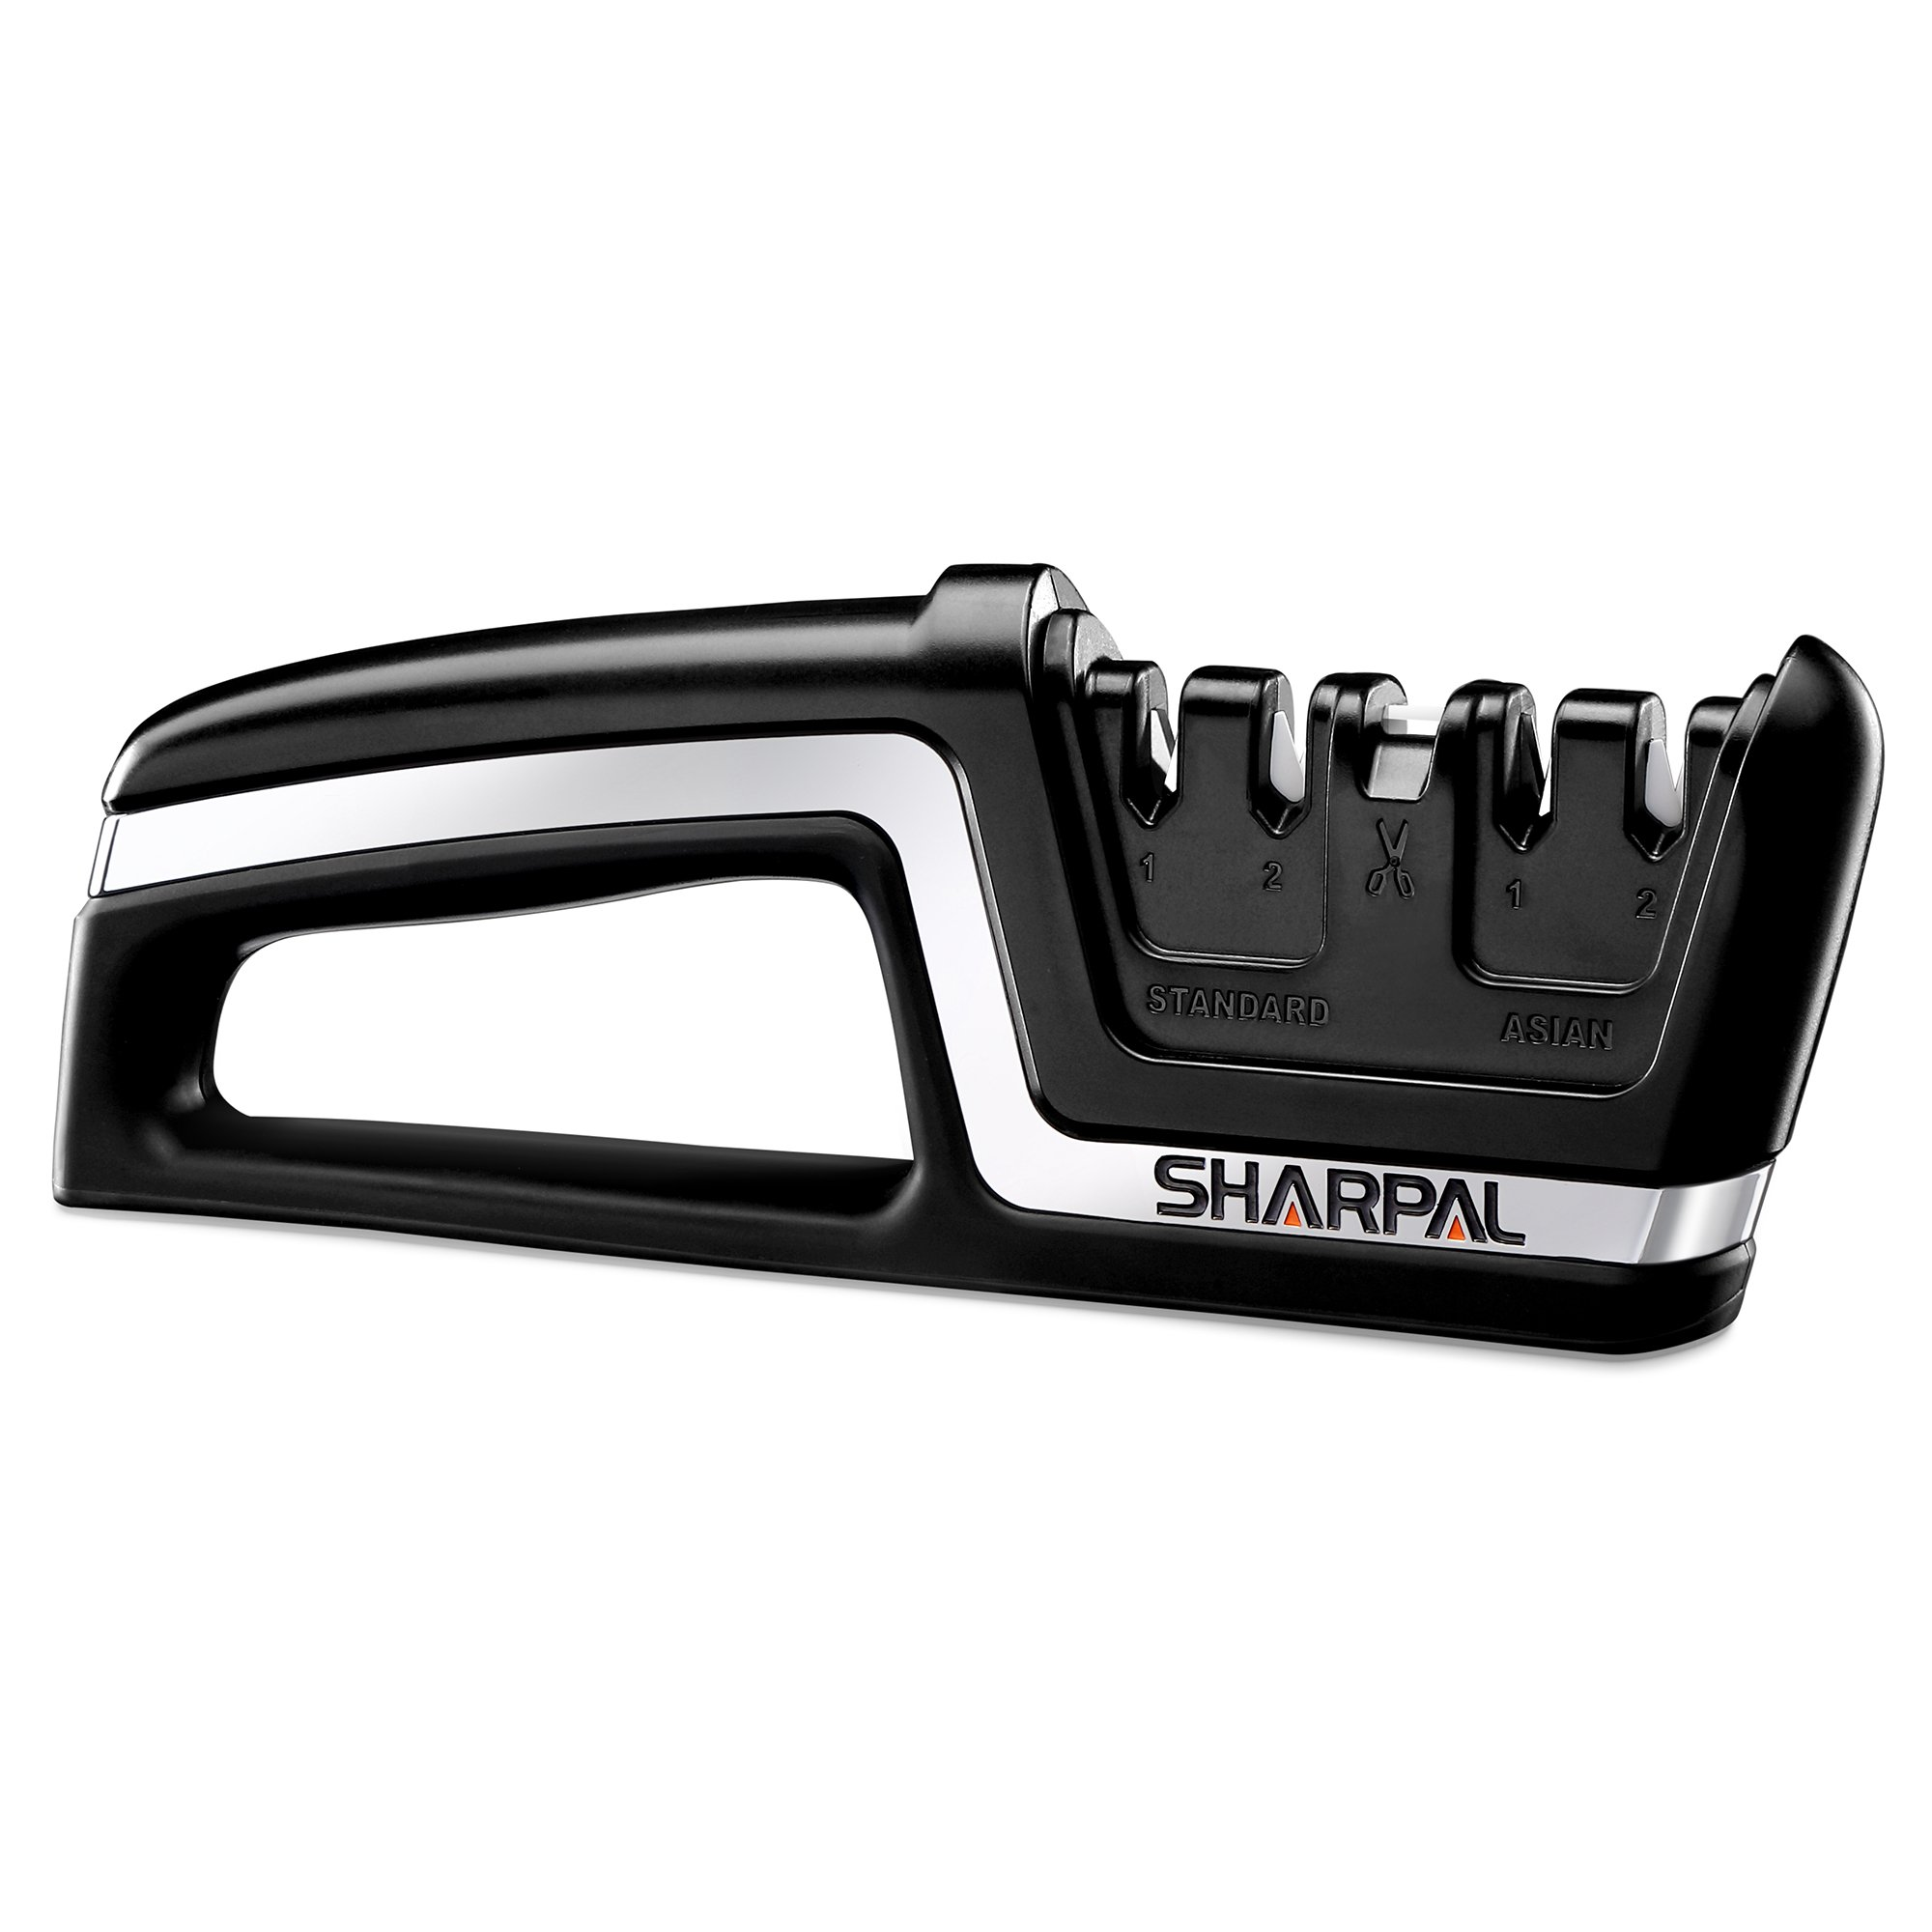 SHARPAL 104N Professional 5-in-1 Kitchen Chef Knife & Scissors Sharpener, Sharpening Tool for Straight & Serrated Knives, Repair and Hone both Euro/American and Asian Knife, Fast Sharpen Scissor